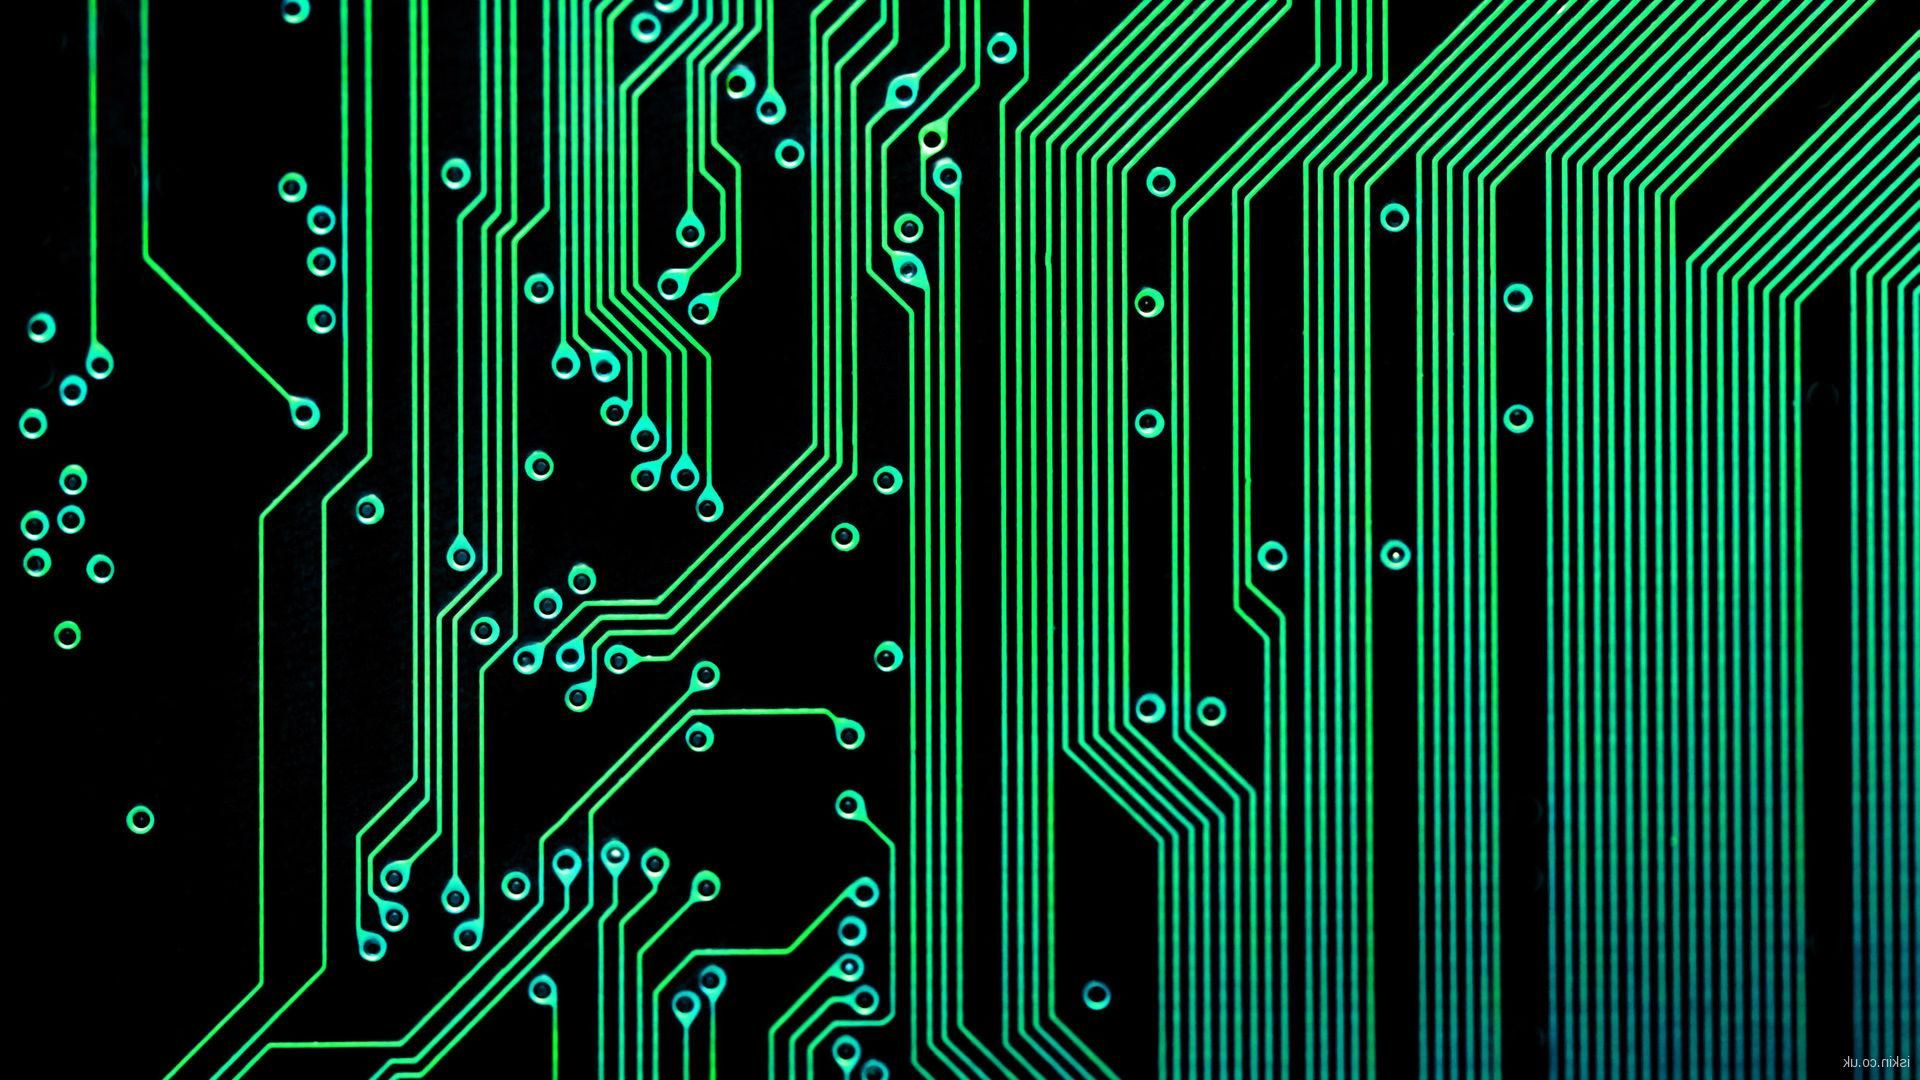 Electronic Circuit wallpaper Circuit Art Architecture in 2019 1920x1080